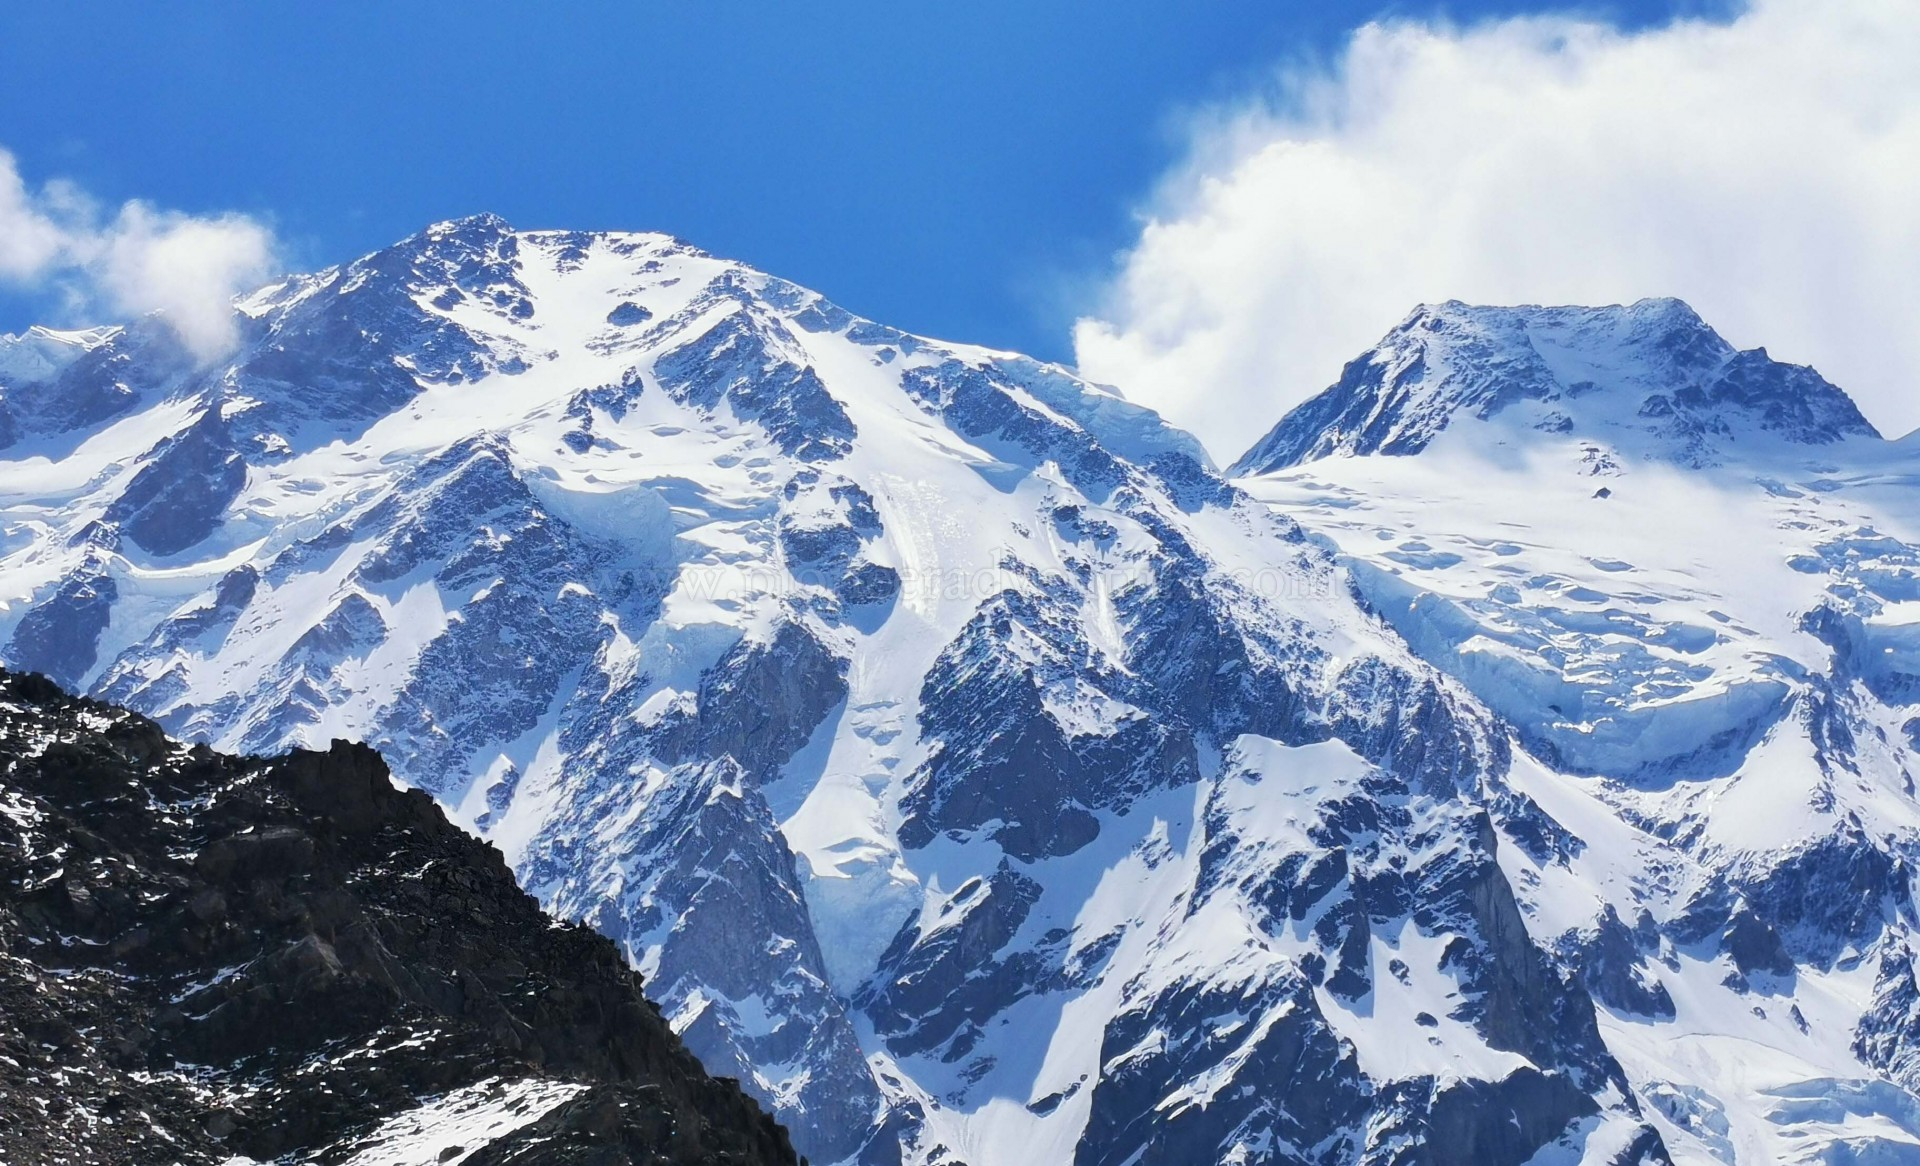 Mt. Nanga Parbat Expedition